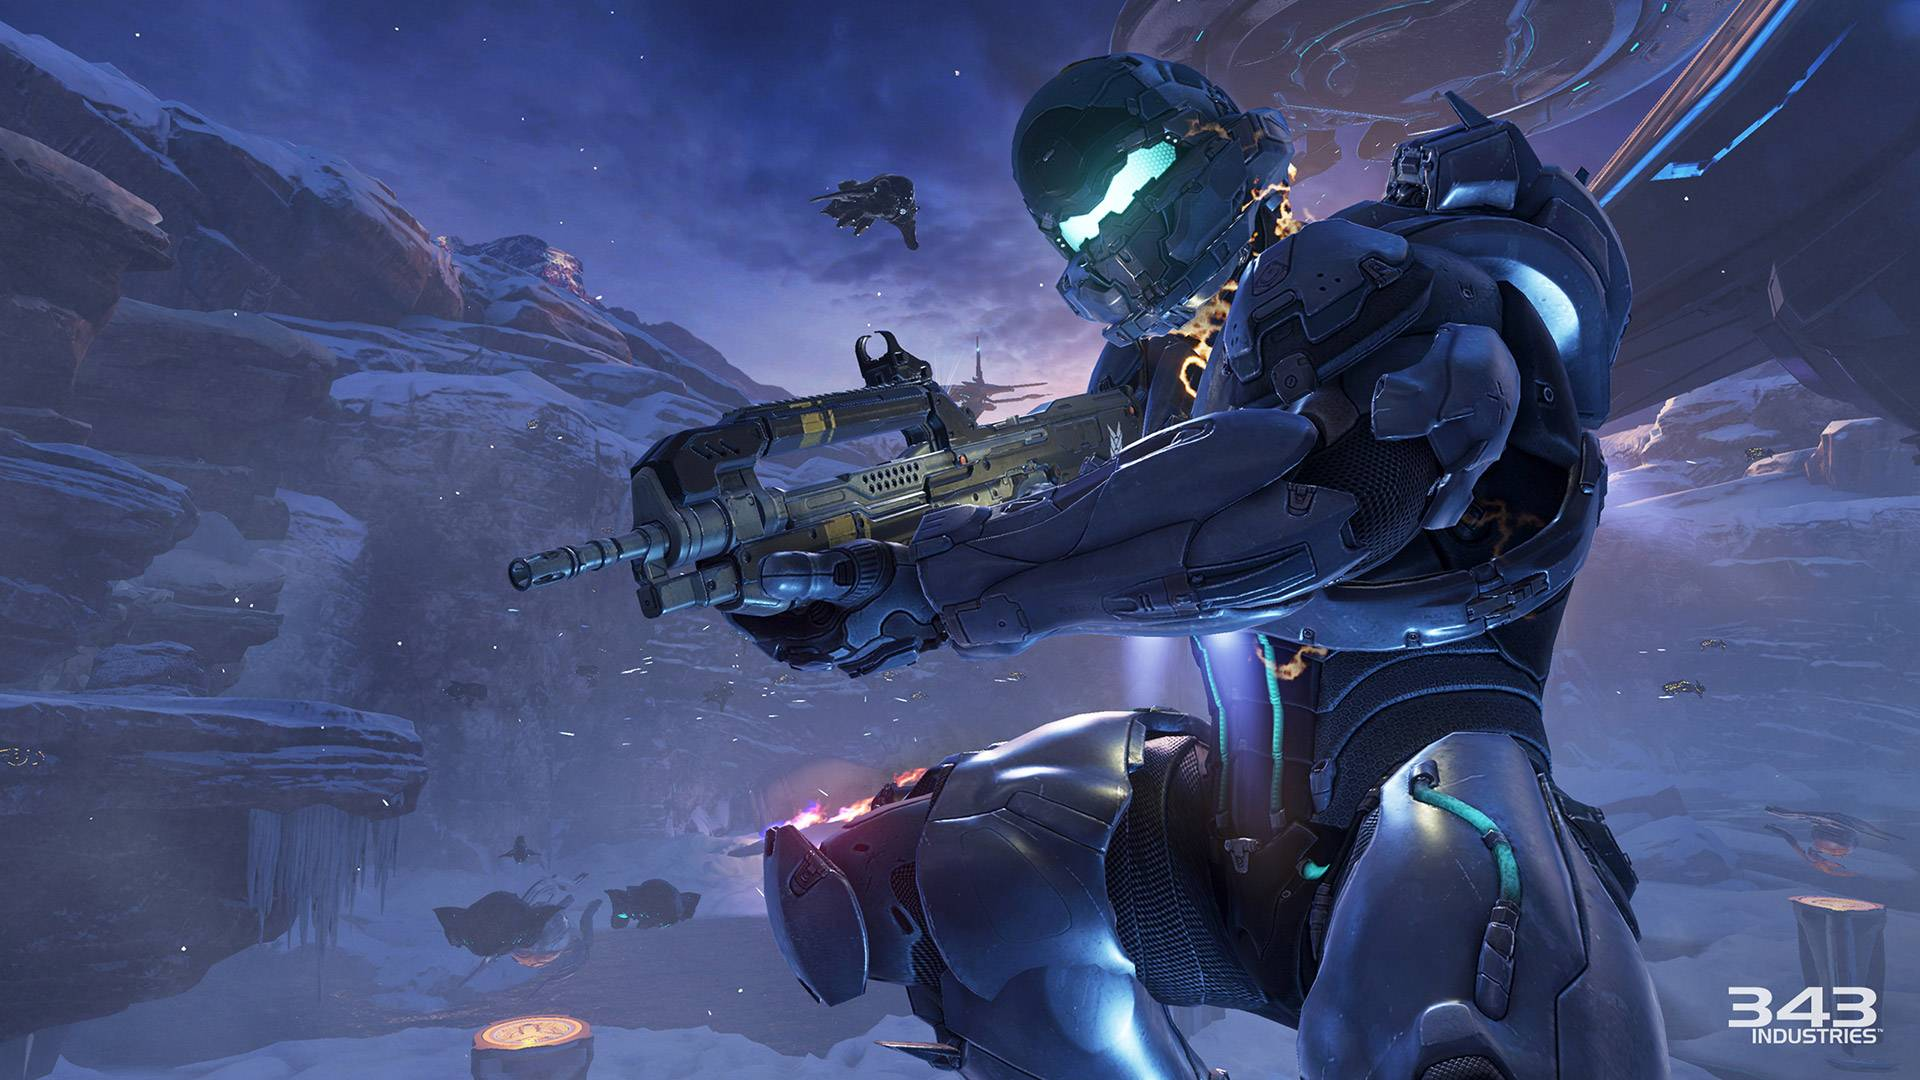 Mission 2 Blue Team Halo 5 Guardians Guide Gamepur